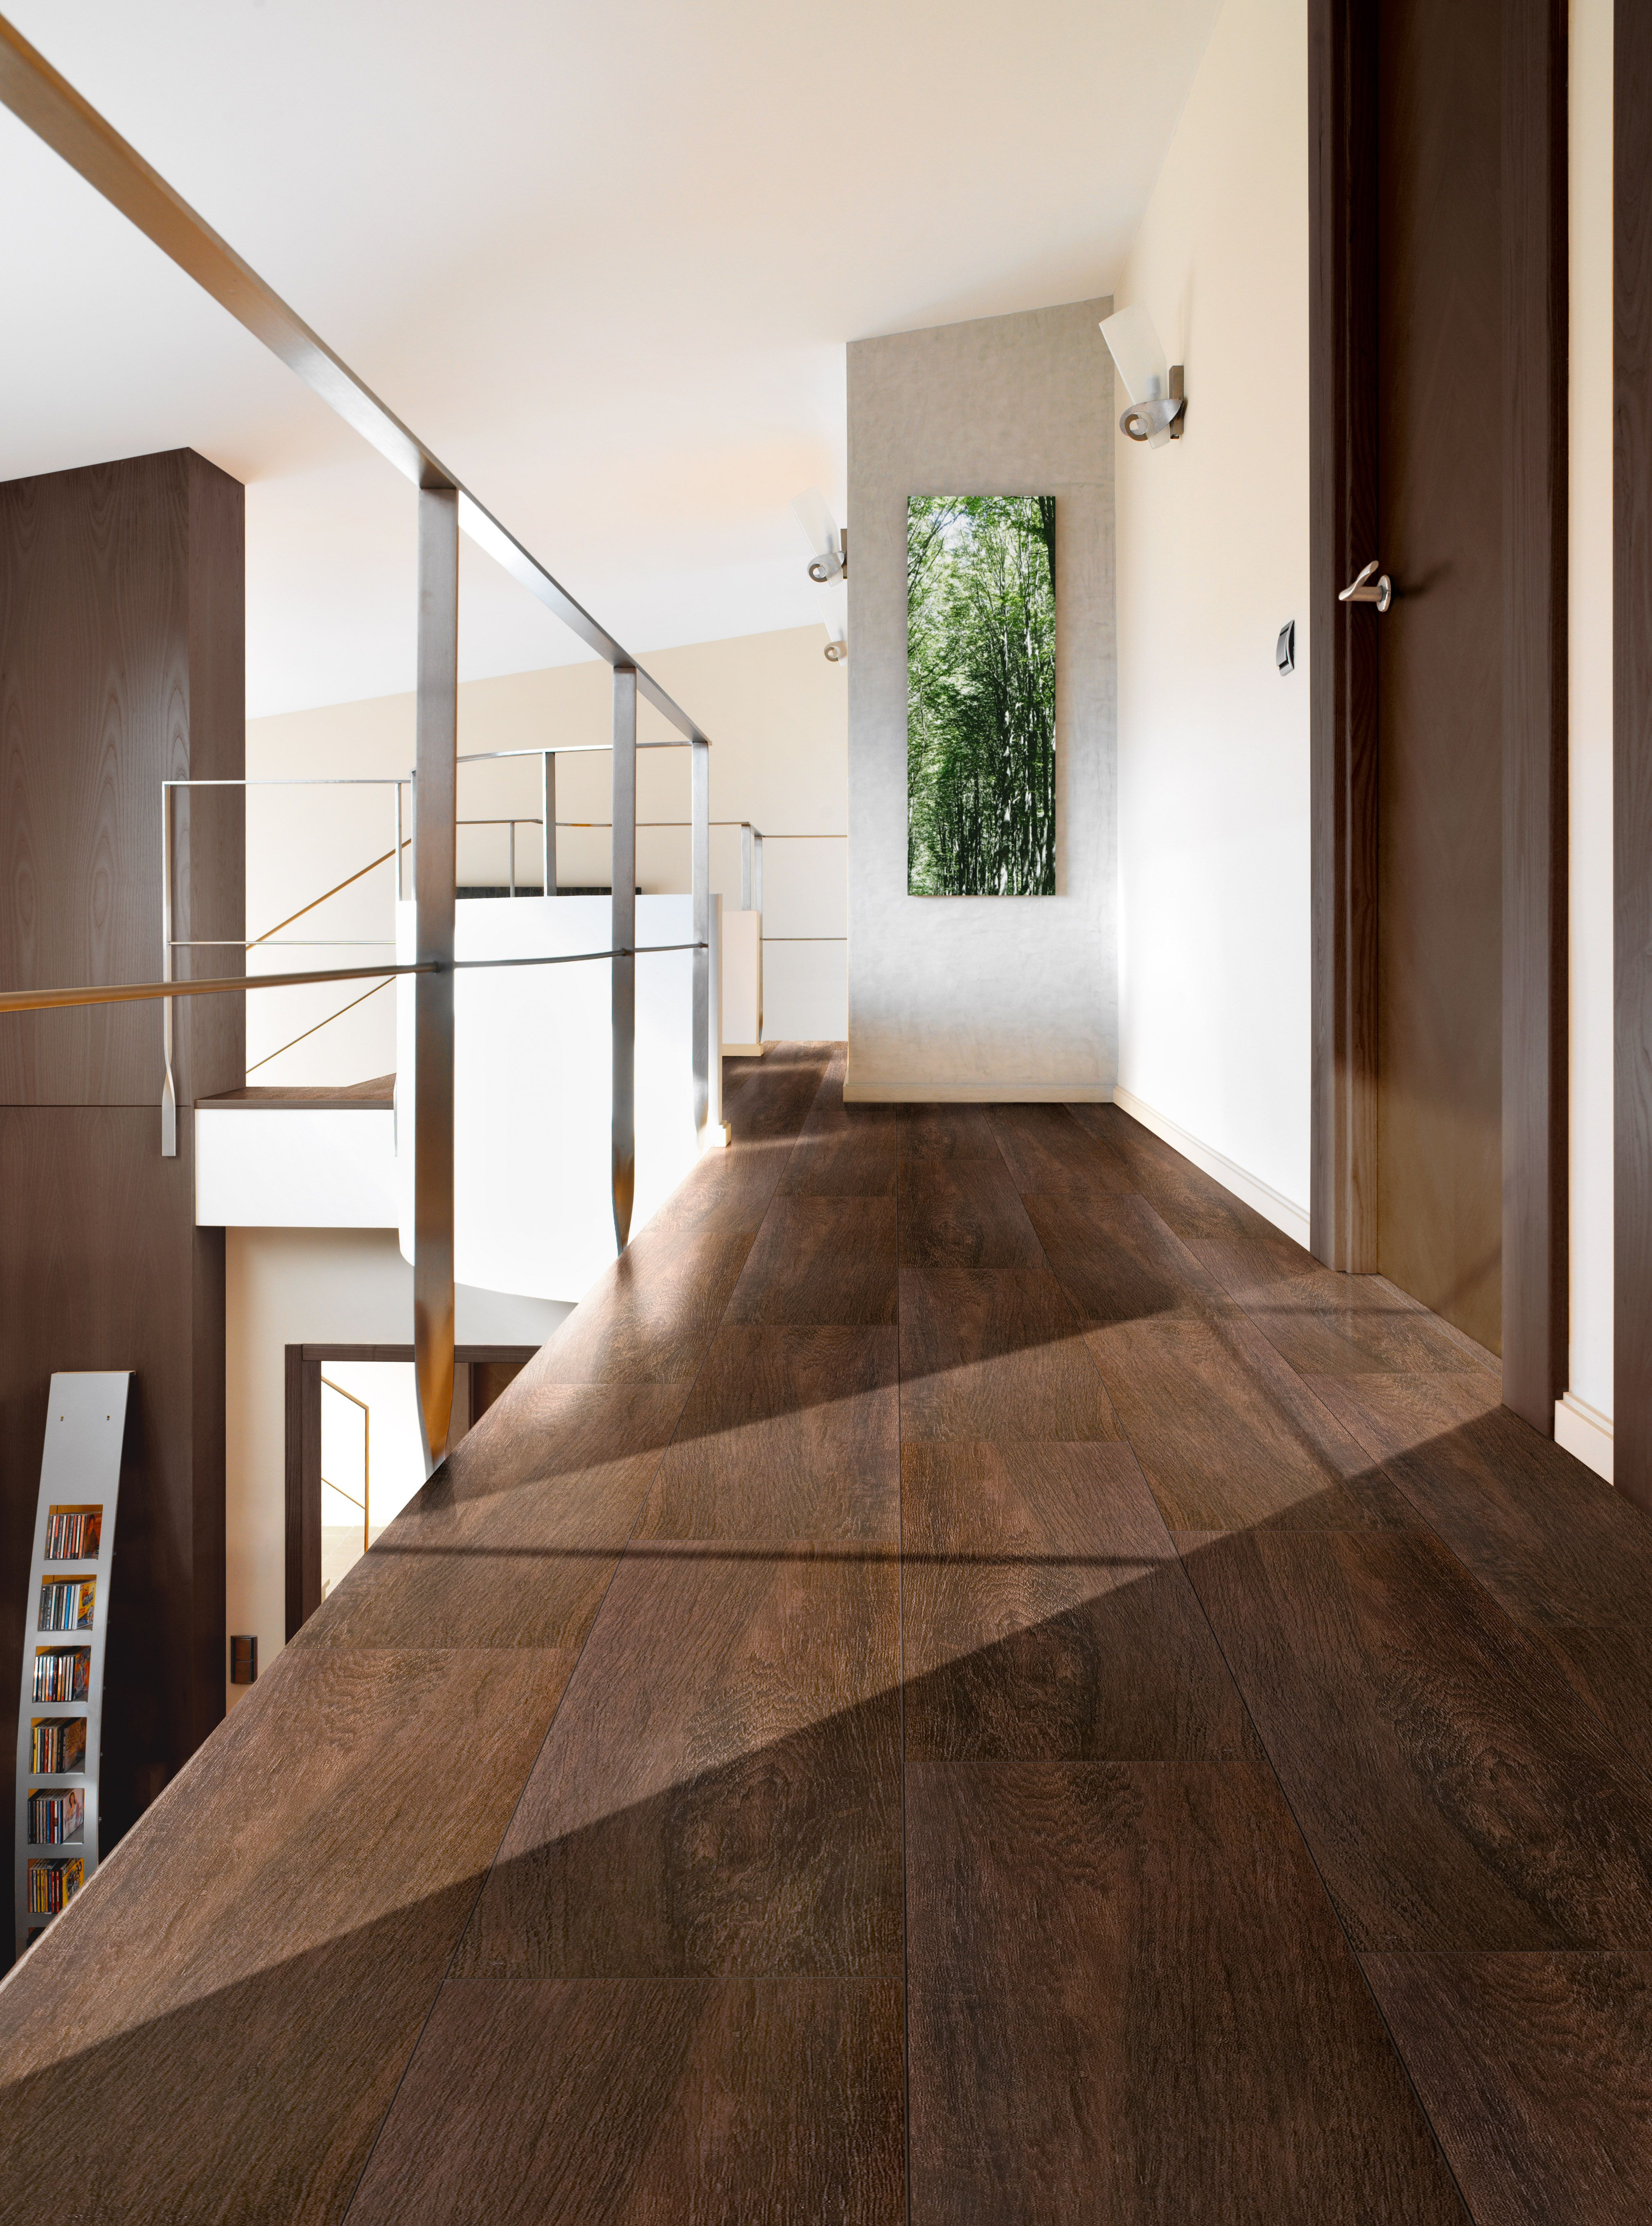 Topps tiles wooden flooring choice image tile flooring design ideas topps tiles wooden flooring choice image home flooring design top tiles wood flooring choice image tile dailygadgetfo Choice Image